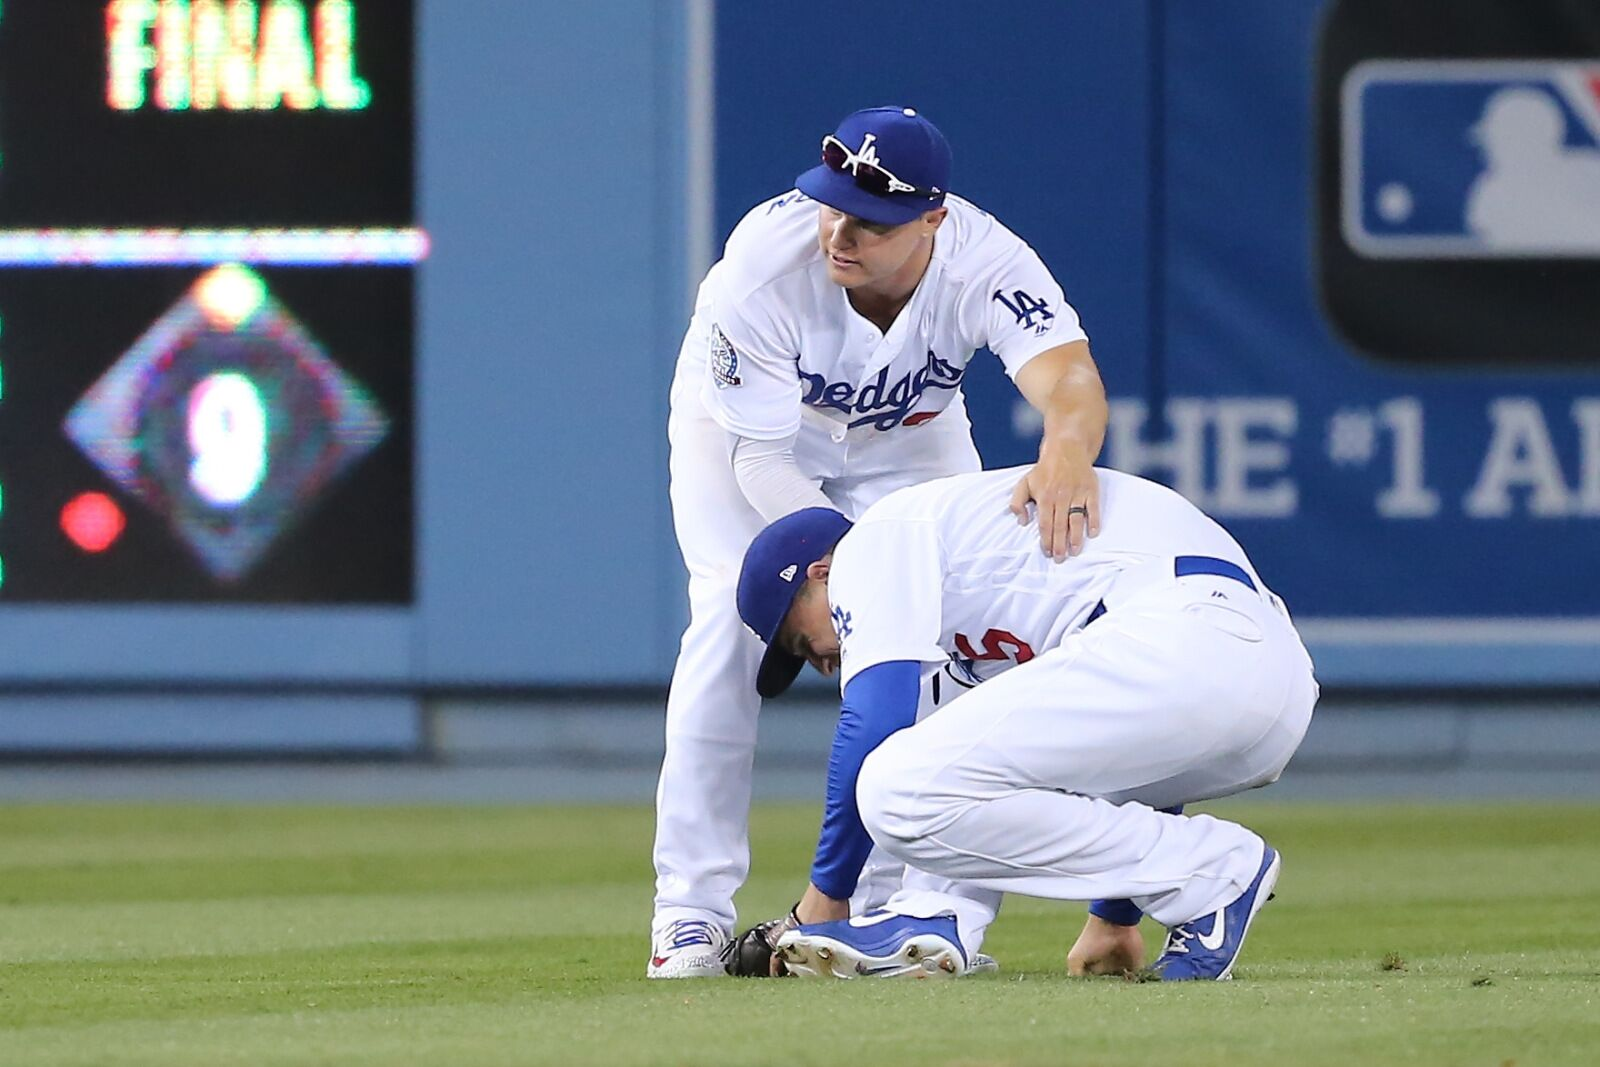 397bda8e5 Los Angeles Dodgers lose Corey Seager for rest of the season